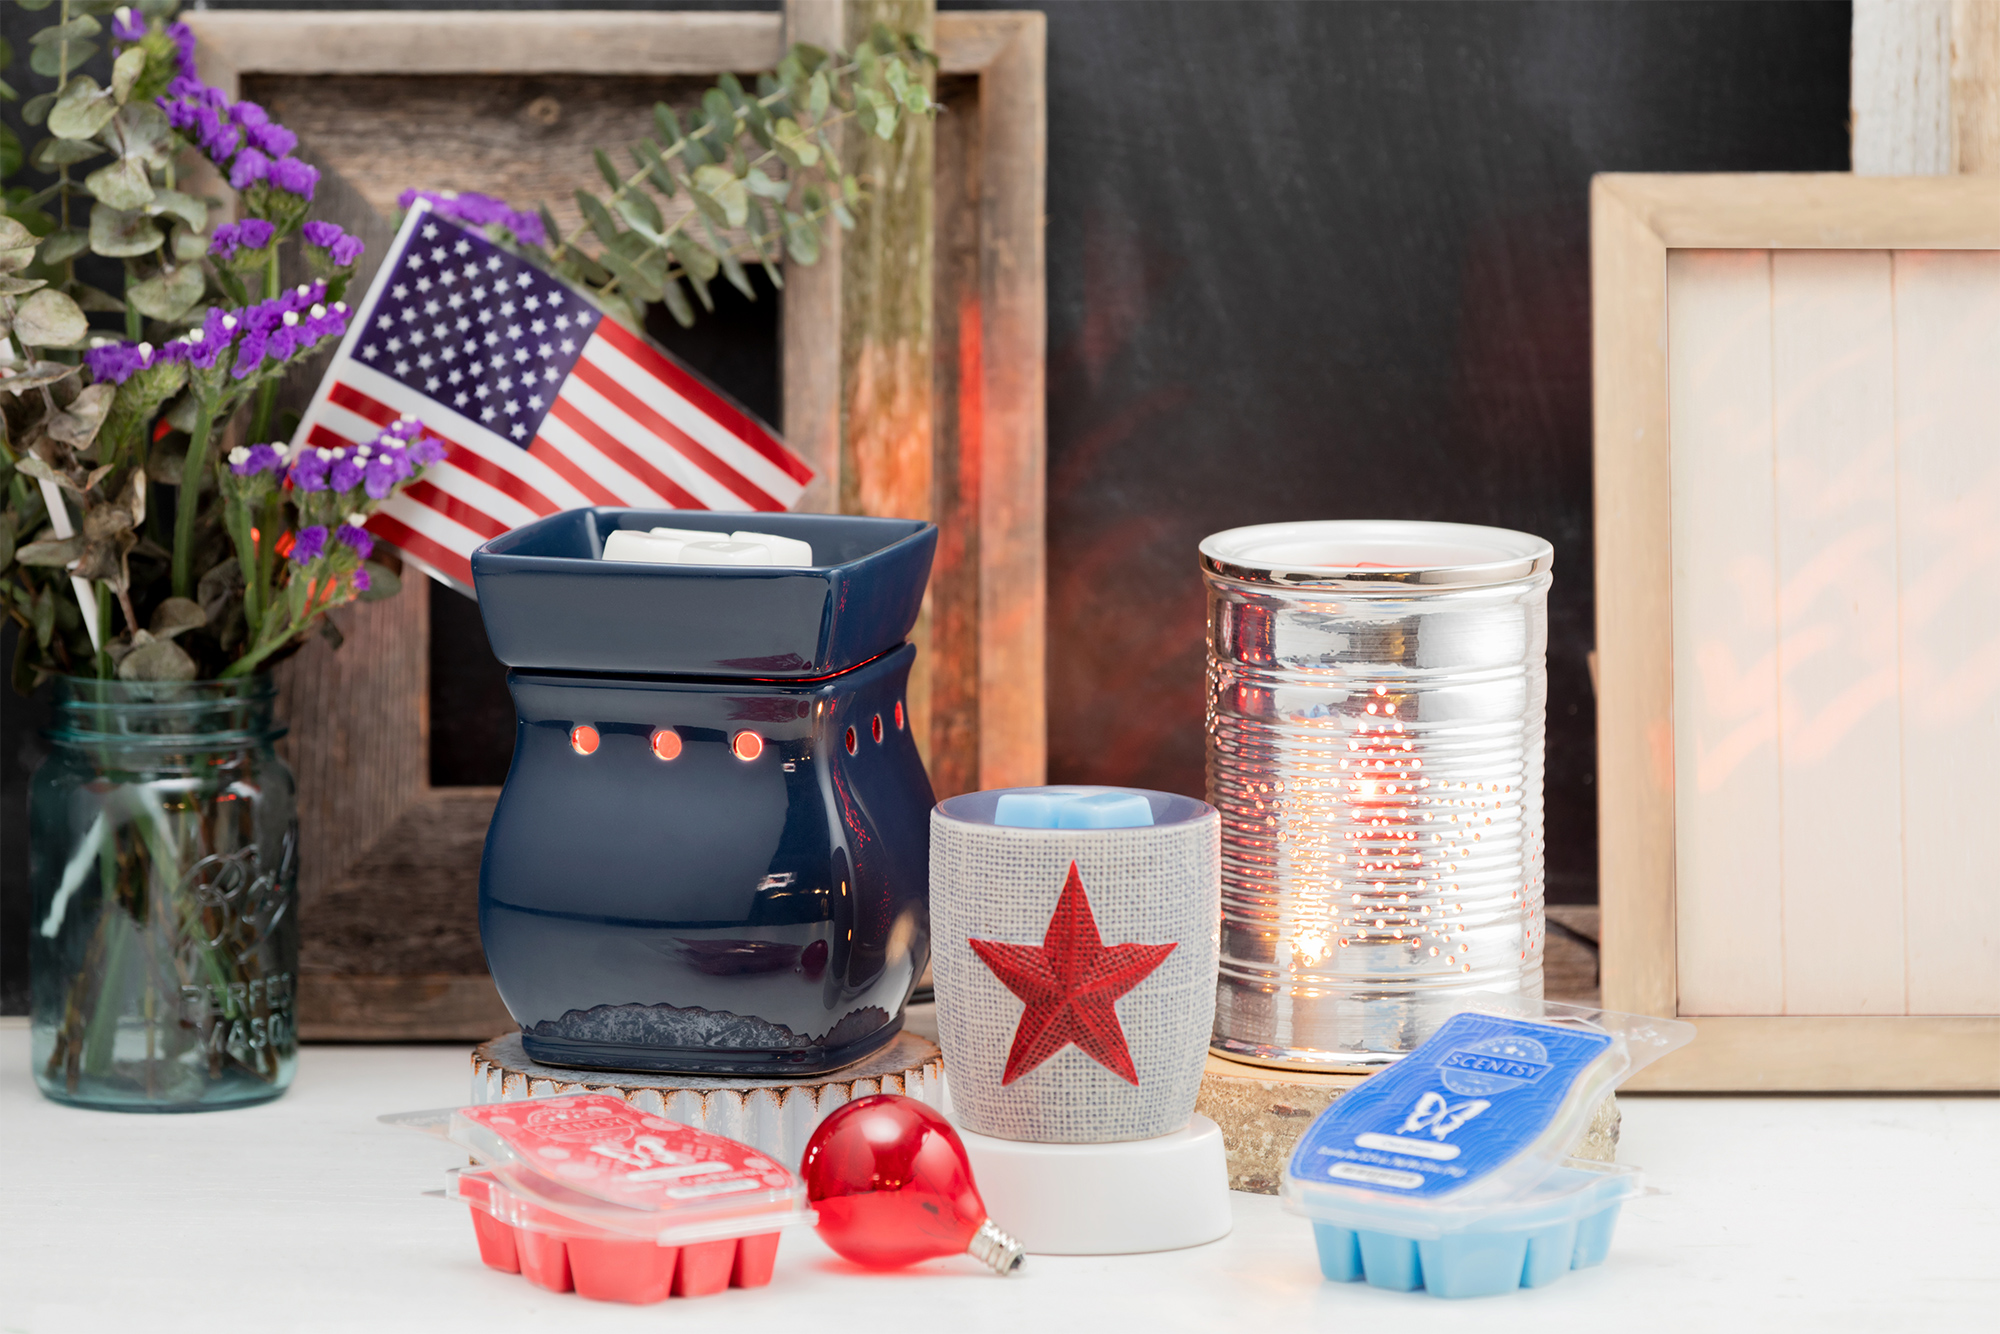 Scentsy Patriotic Decor